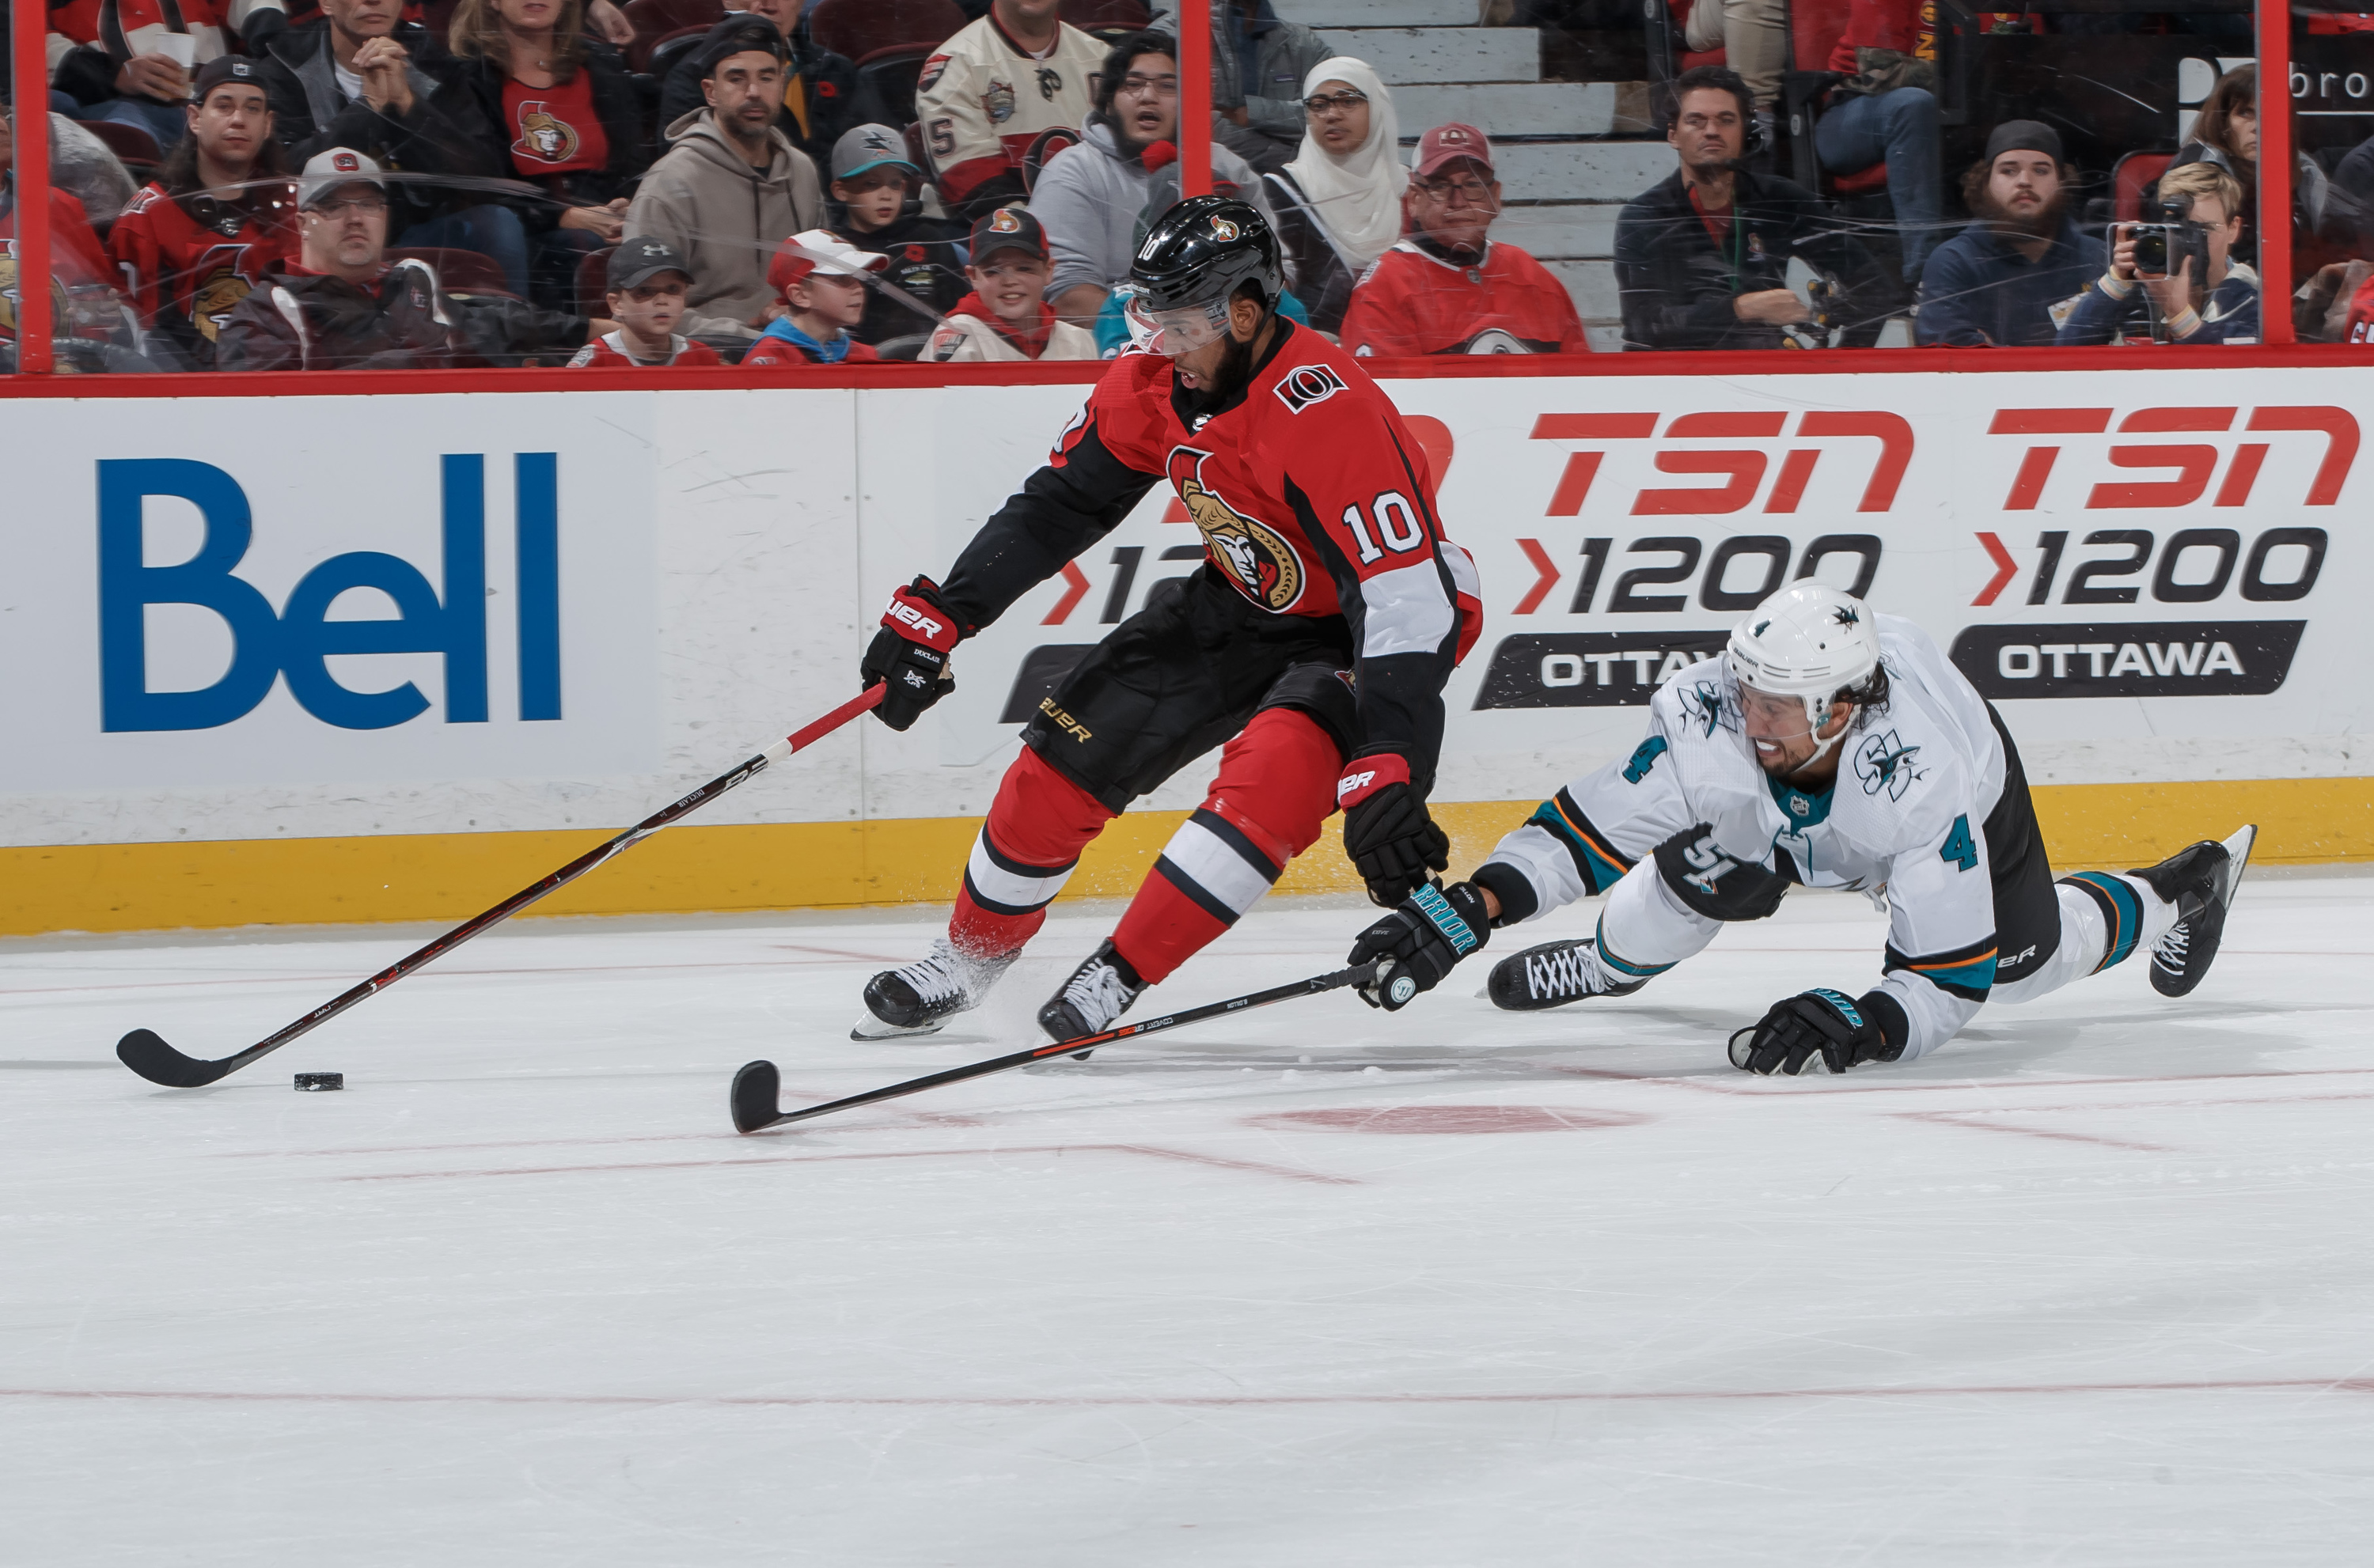 Anthony Duclair #10 of the Ottawa Senators stickhandles the puck against a sprawling Brenden Dillon #4 of the San Jose Sharks, leading to his third period goal at Canadian Tire Centre on October 27, 2019 in Ottawa, Ontario, Canada.